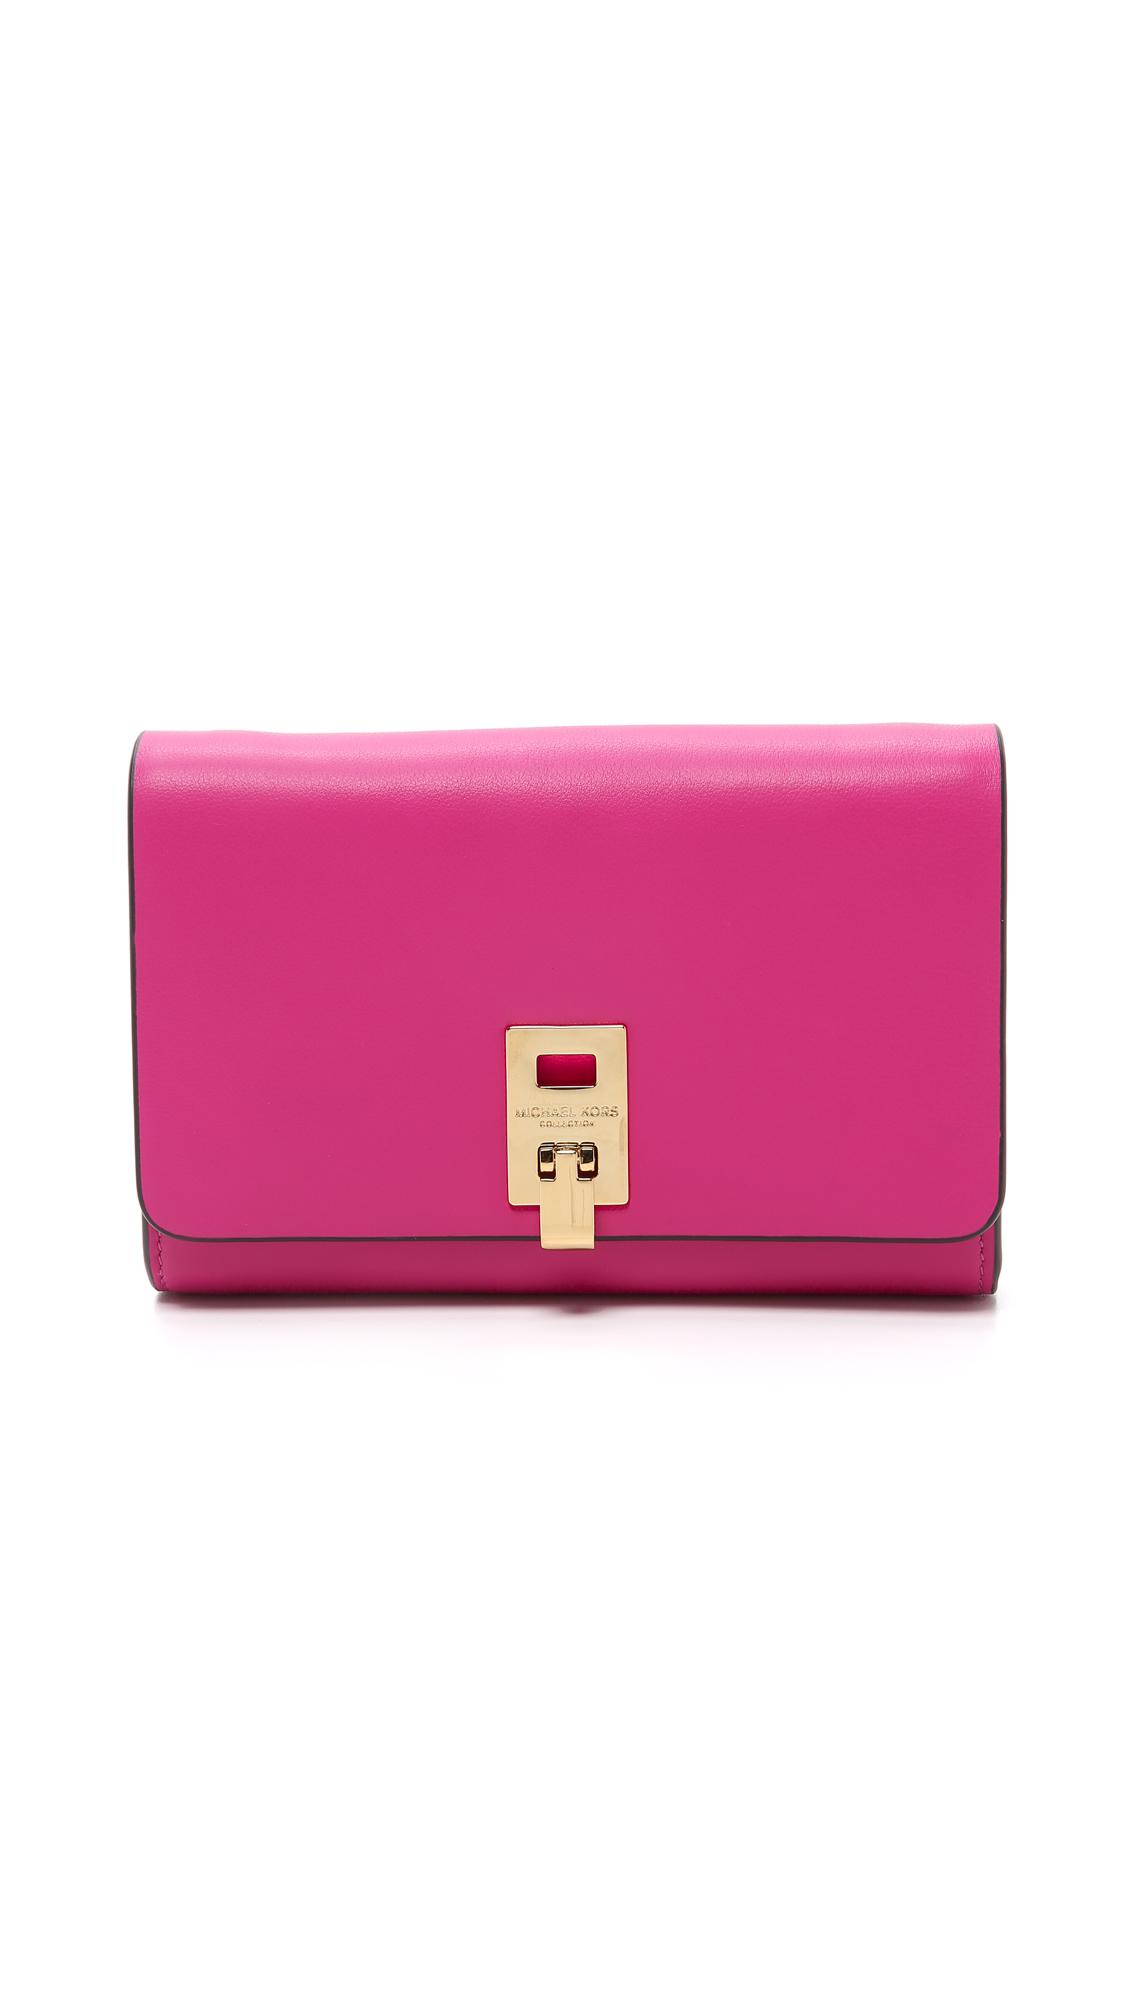 1756b817a646 Michael Kors Miranda Wallet With Strap - Geranium in Pink - Lyst